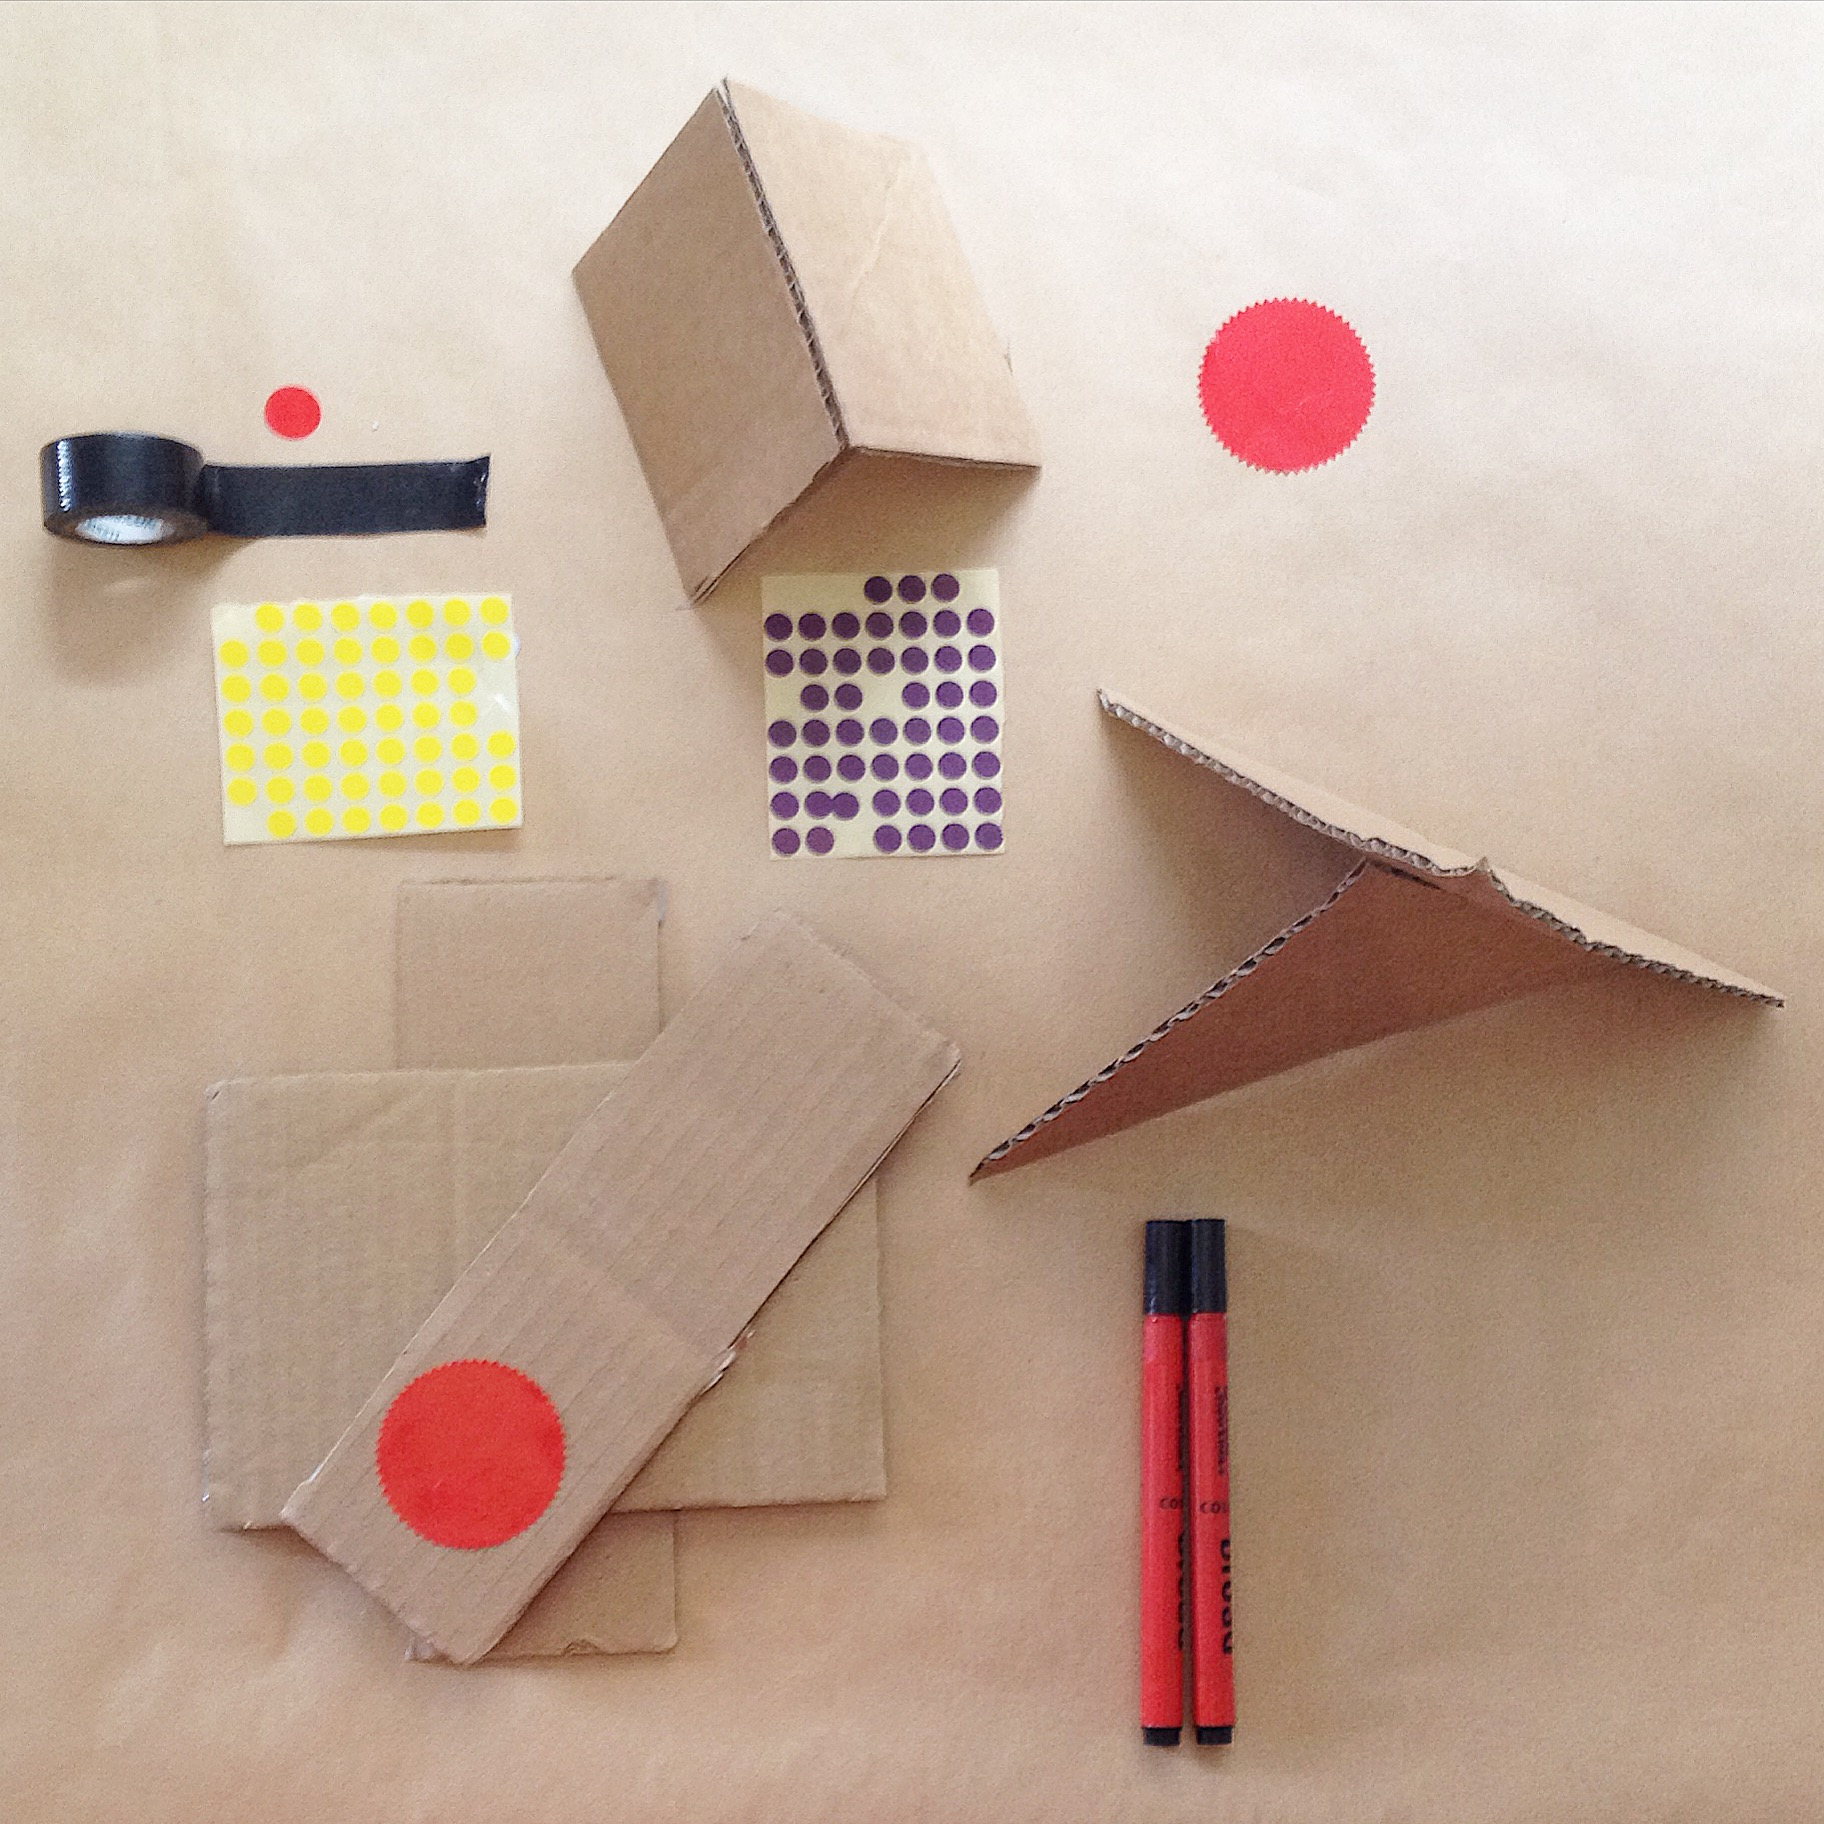 2. Cardboard, tape, stickers, pens